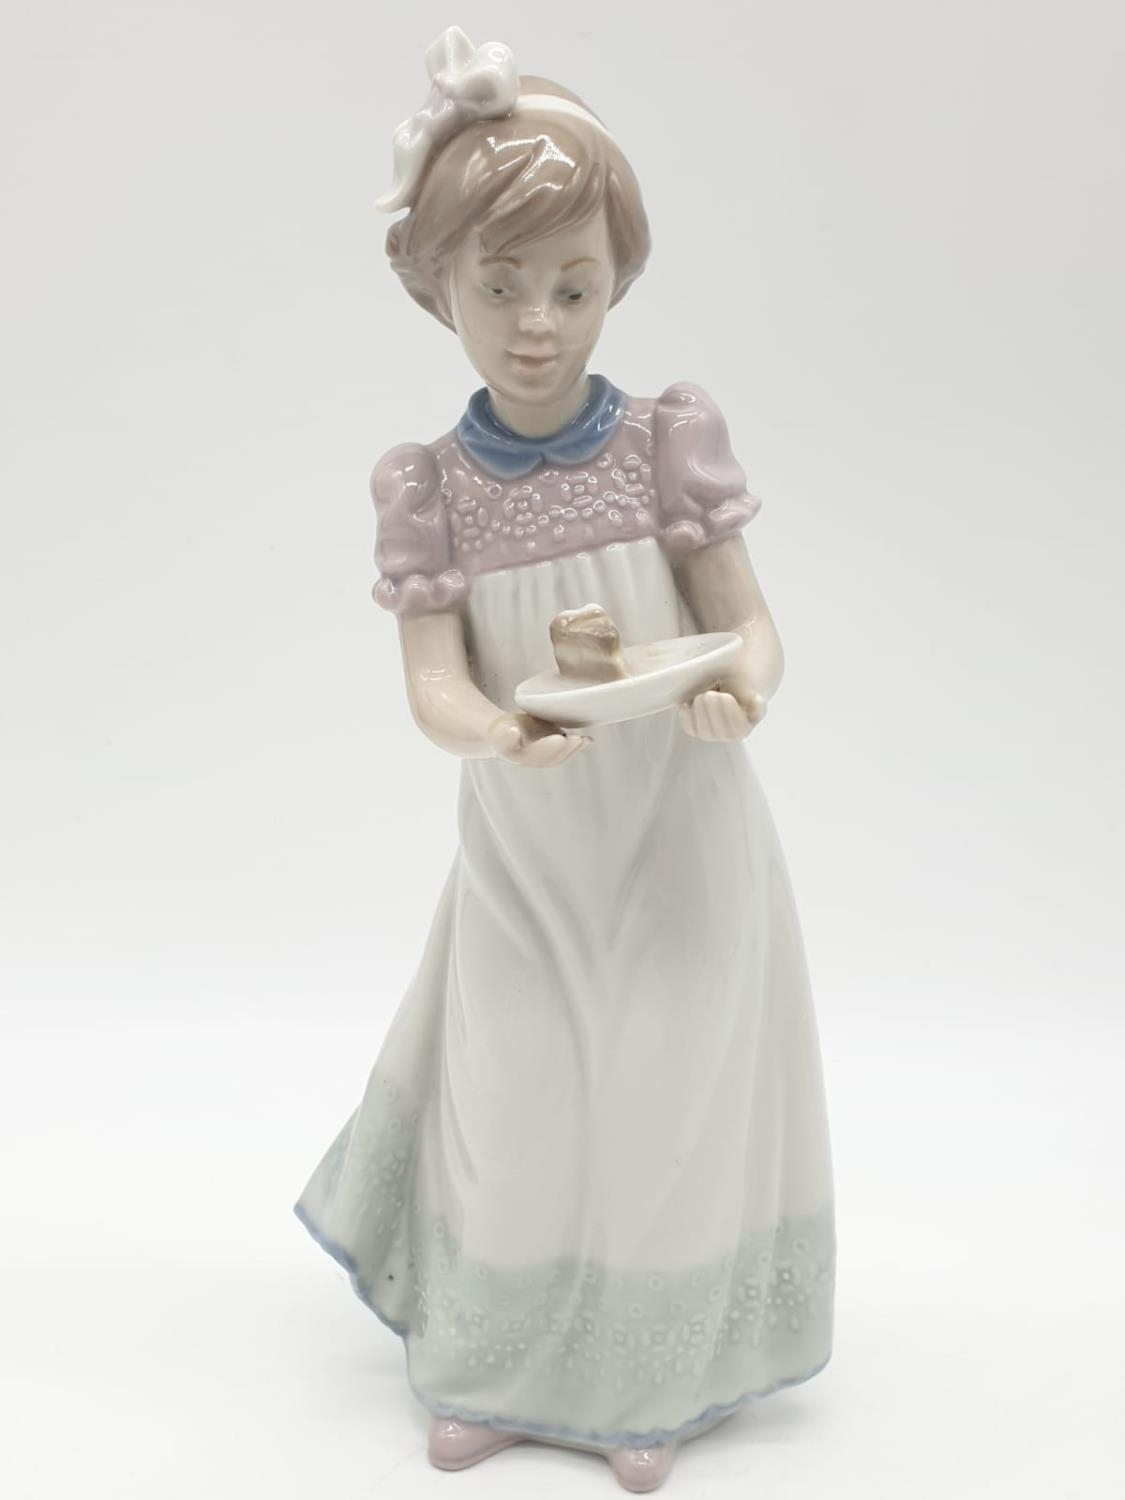 Lladro girl holding a cake on a plate. 20cm tall.